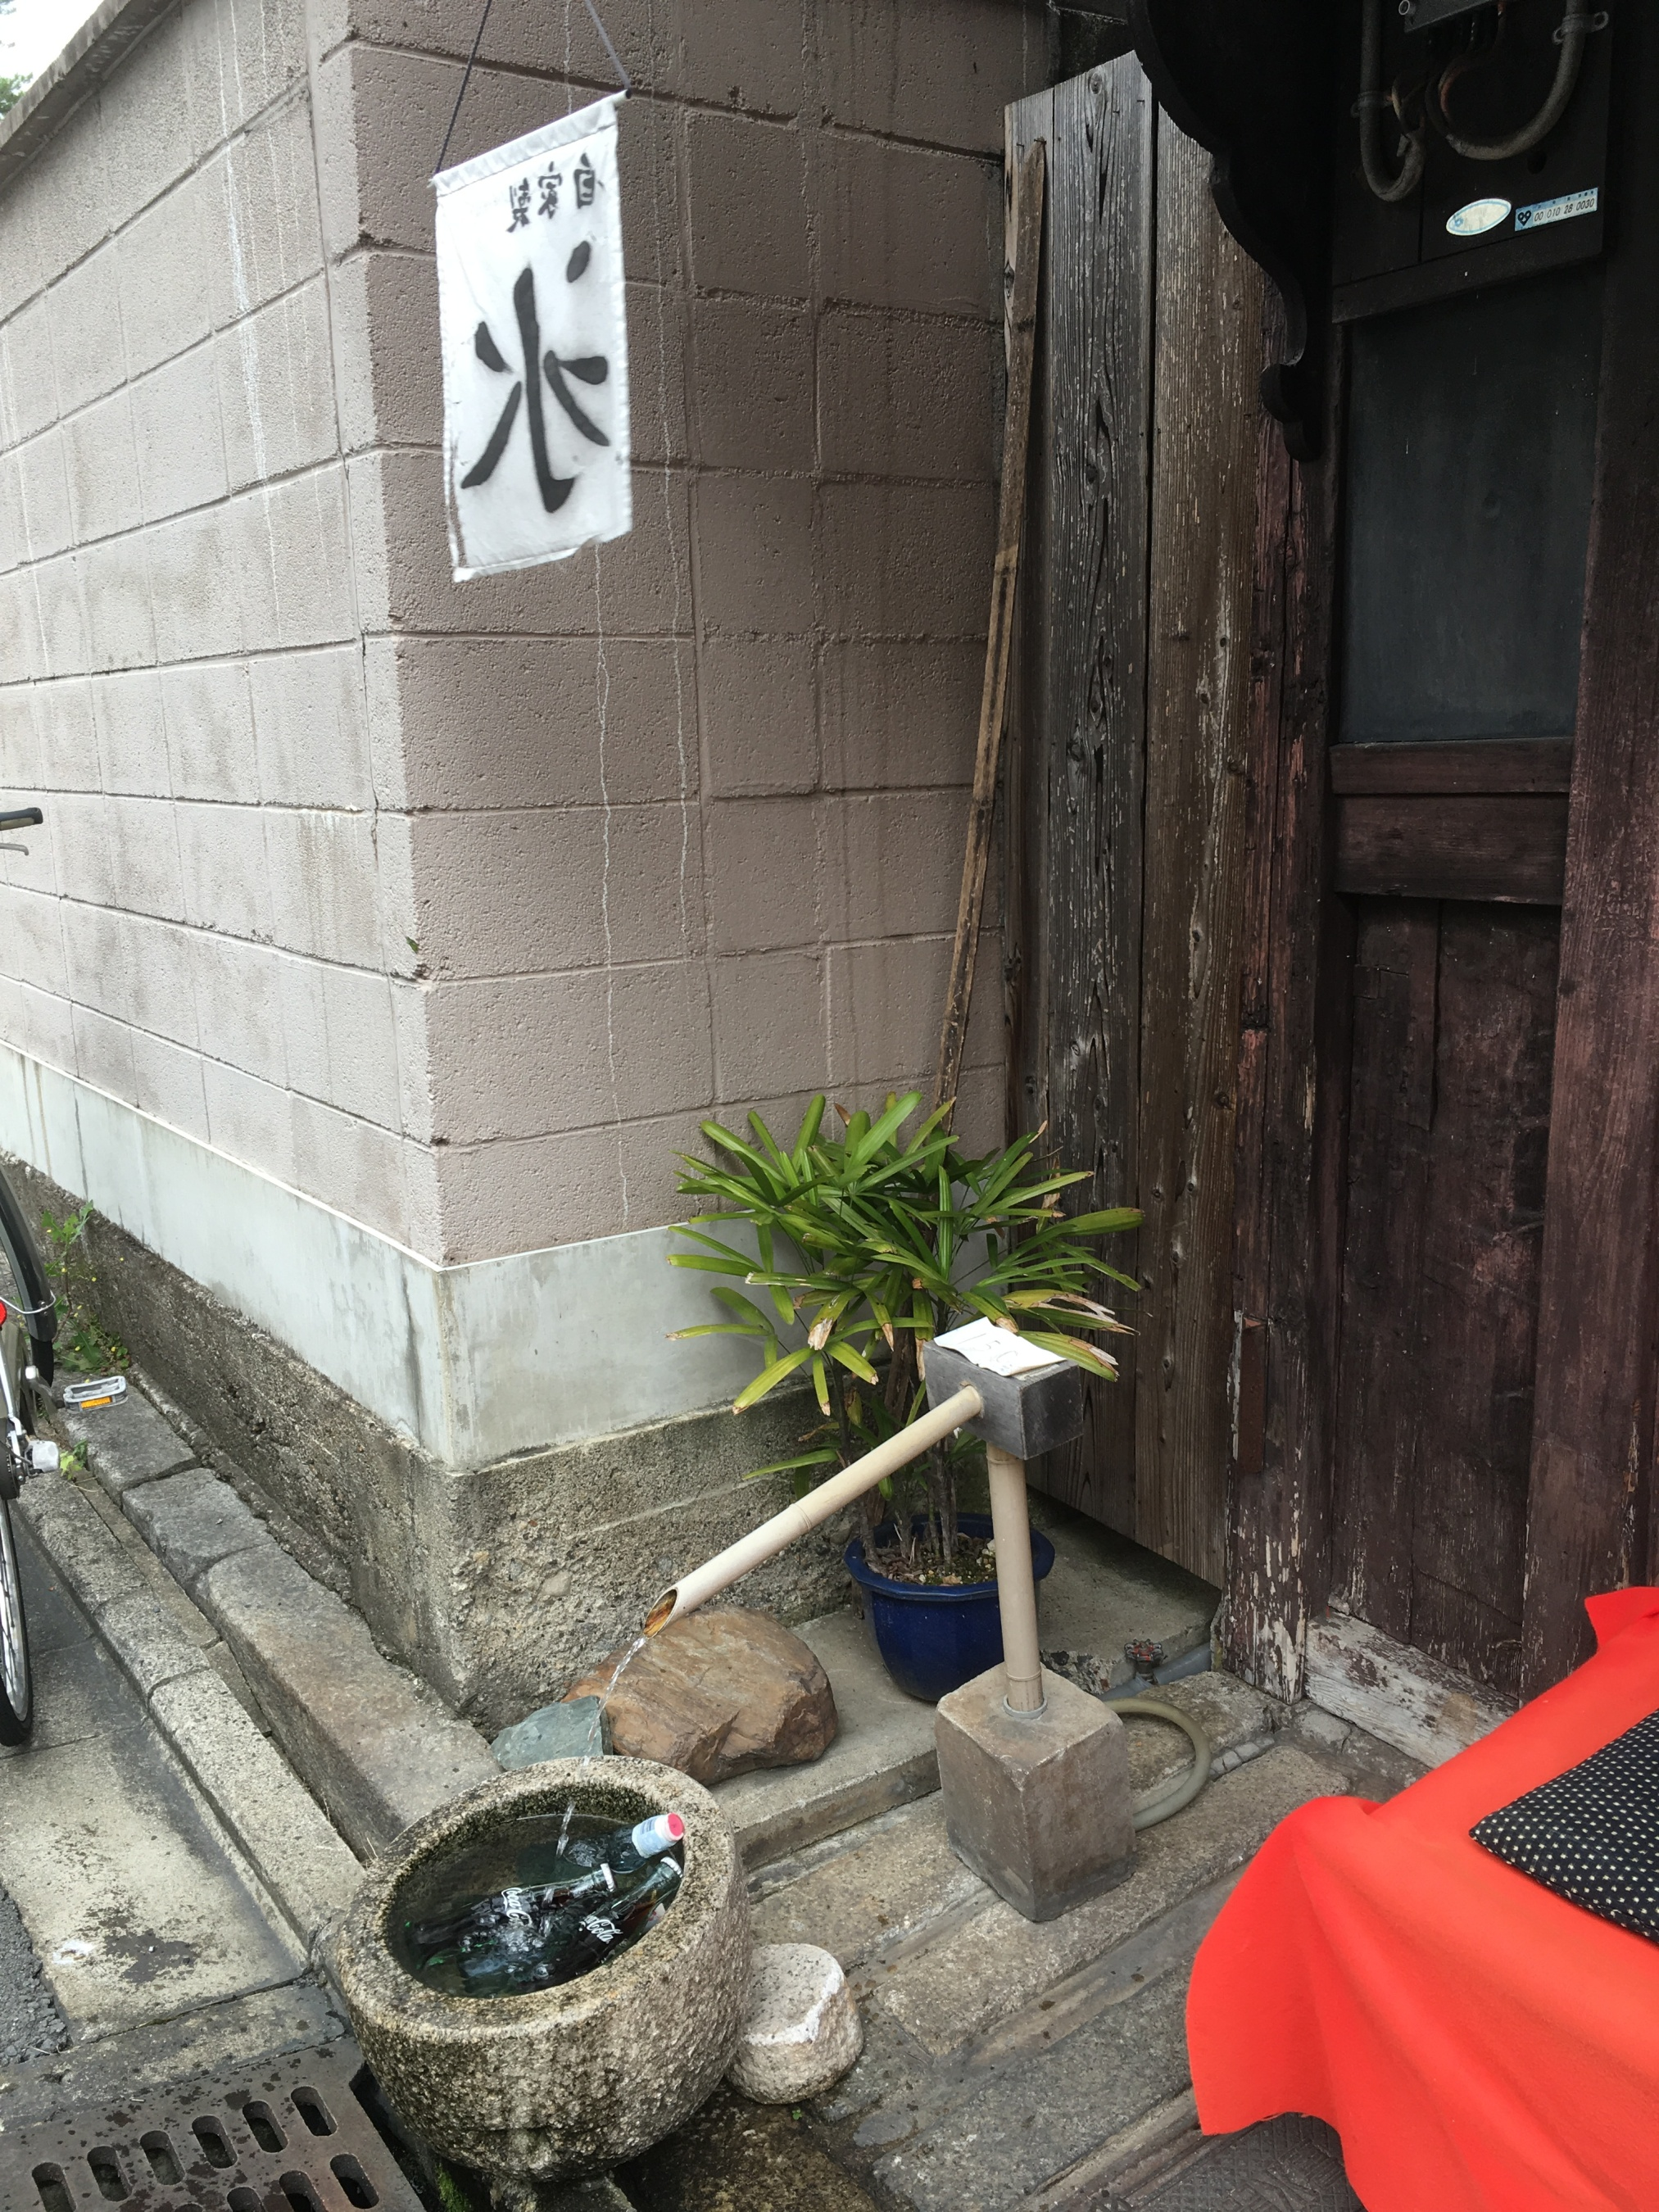 Here is the kanji for water, seen at Koshiya - a famous sweet shop near Nijo Castle. The kanji differs from that of ice in that it only has two strokes on the left rather than three. Thanks to Gabi Greve for pointing this out. :-)